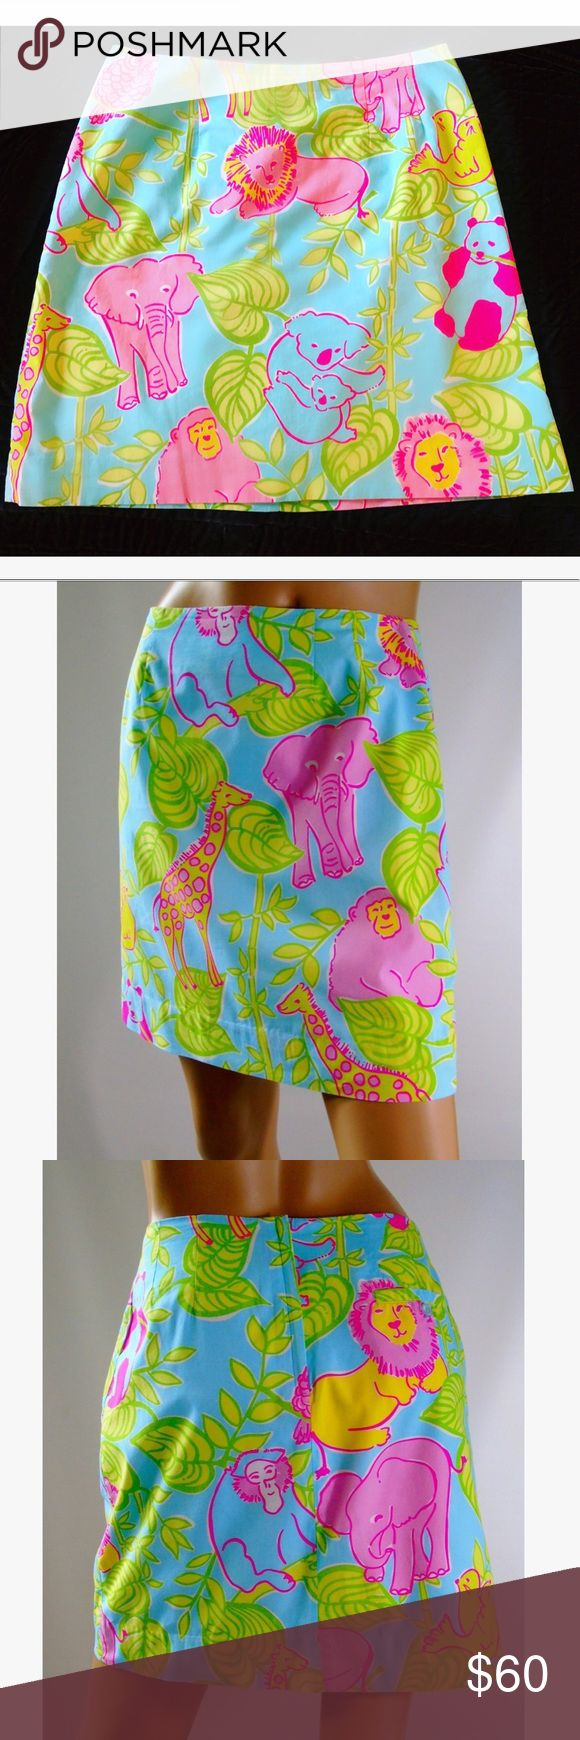 """Lilly Pulitzer Skirt. Blue San Diego Zoo Print Rare Lilly Pulitzer White Label Animals Skirt. Nassau Blue San Diego Zoo Print. Kohalas, Elephants, Lions, Pandas, Monkeys, Owls... Bamboo. Hidden Pocket, extra button inside lining, True to size! Waist: 15""""x2, Hips 20x2, Full length 18.5 No Stains, no Broken, no Flaws! I still love this skirt so it won't be easy to let it go... so no low bidders please  Lilly Pulitzer Skirts Mini"""